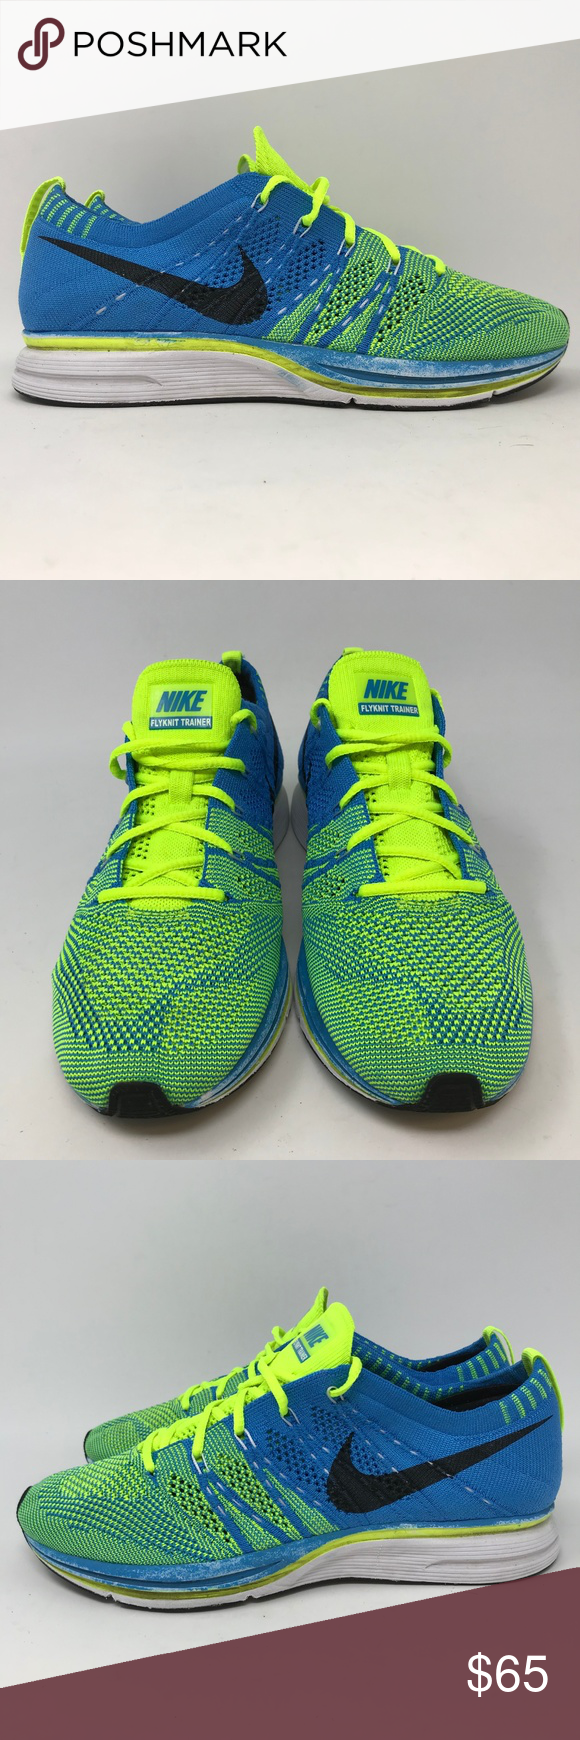 100% authentic 89a7c 1b313 Nike Flyknit Trainer Size 5.5 Running Shoes J10 Nike Flyknit Trainer Size  5.5 Blue Yellow 532984 447 Rare Olympic Running J10 Shoes are in used  condition, ...